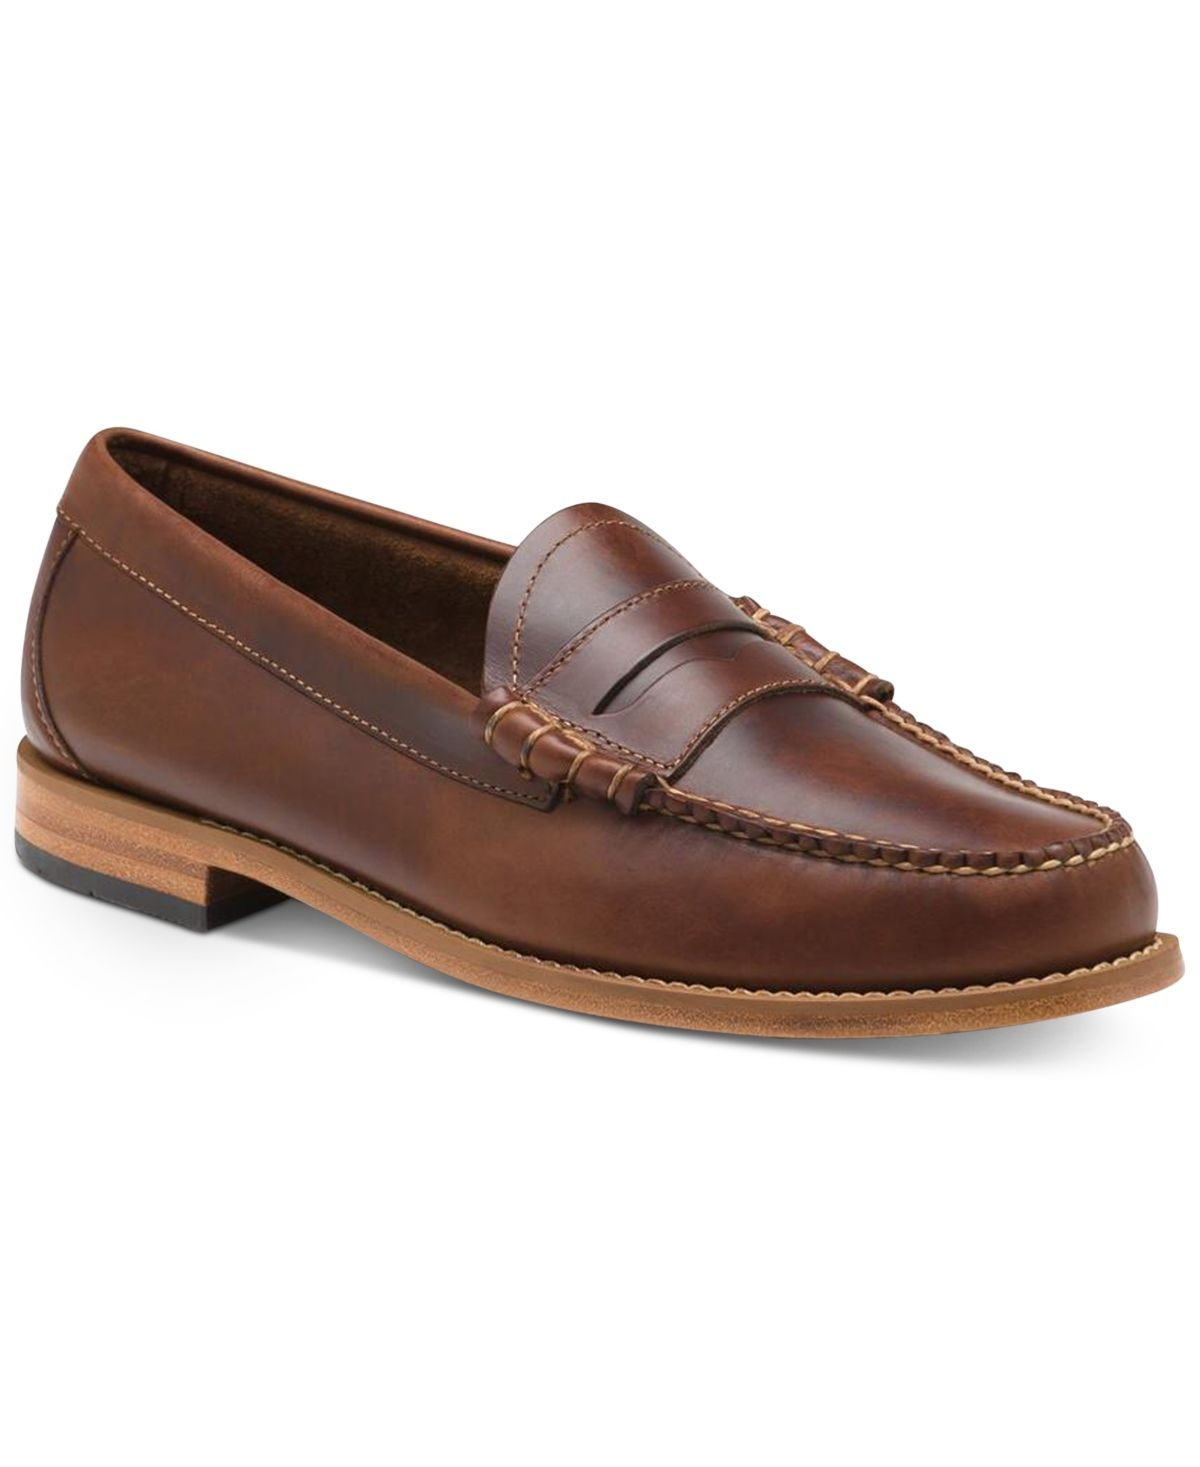 G.h. Bass & Co. Men's Larson Dress Penny Loafers Seahorse